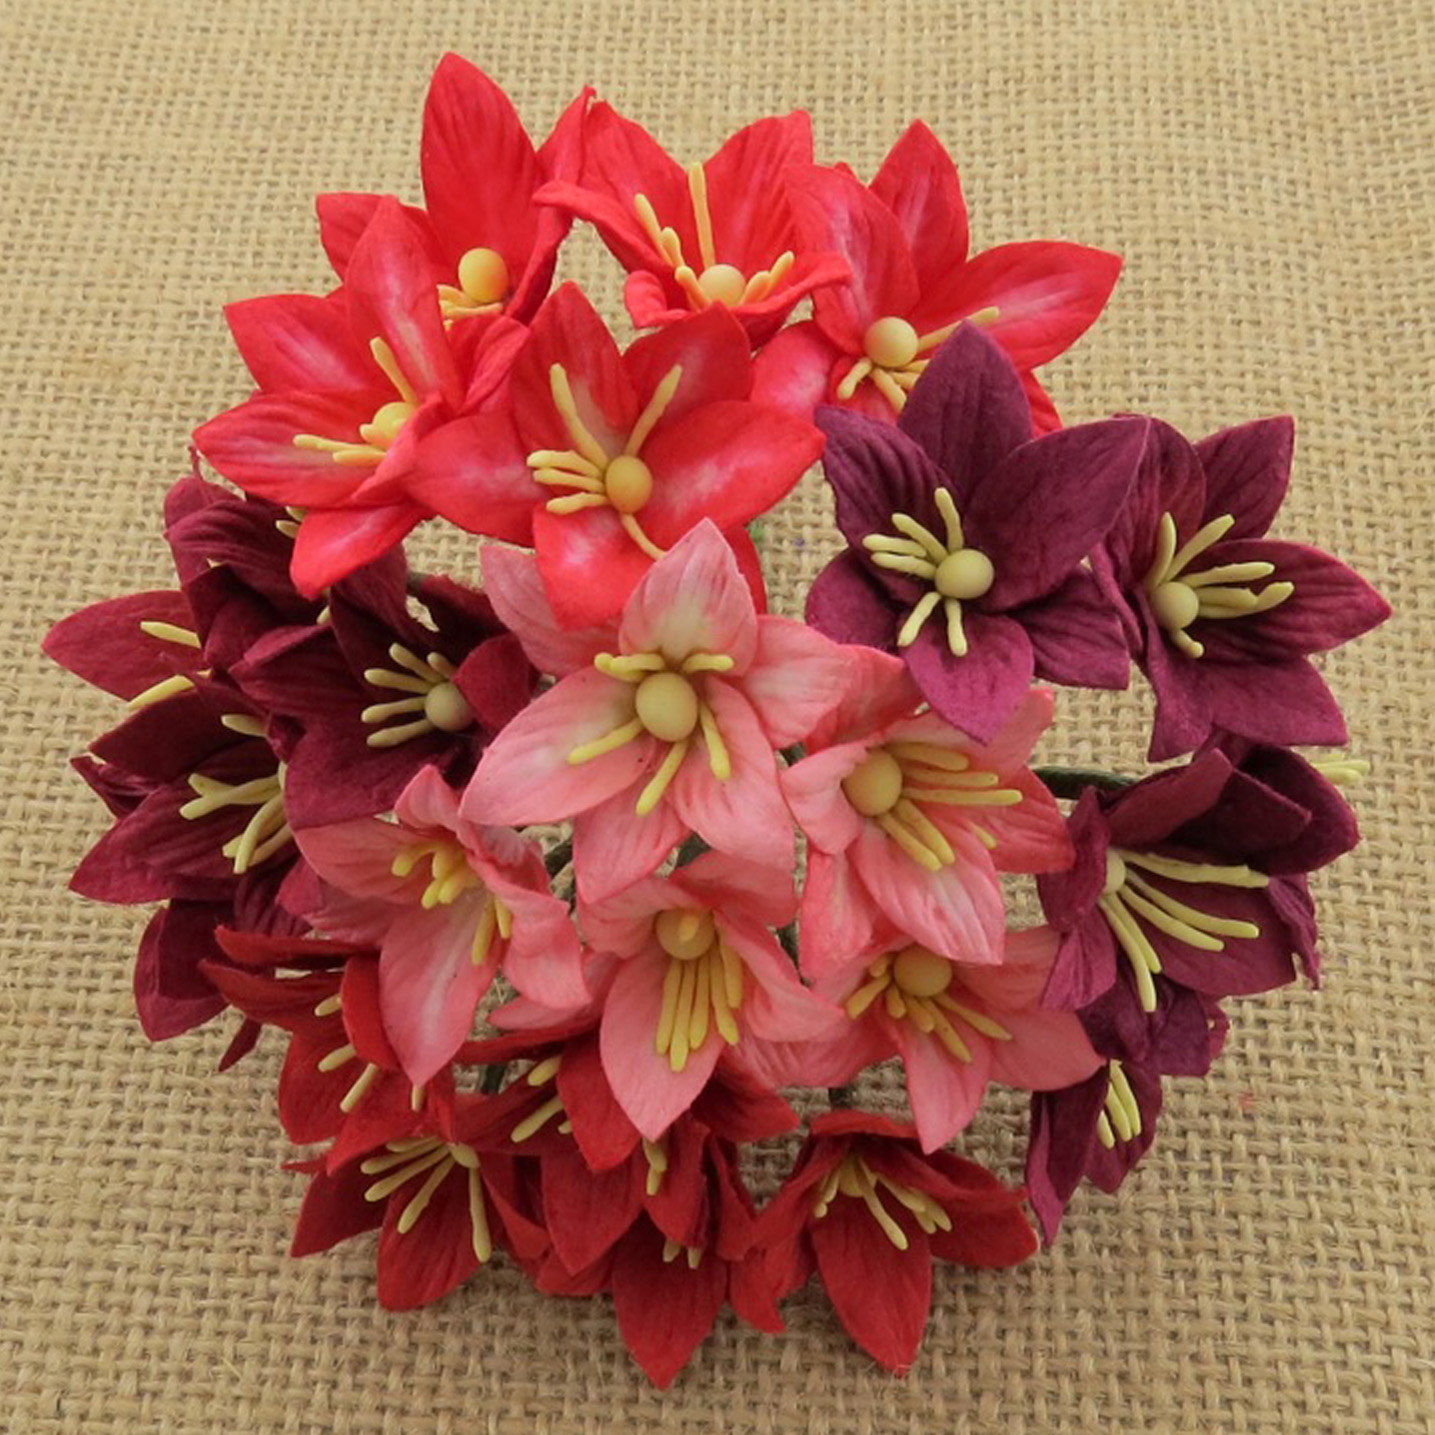 50 MIXED RED MULBERRY PAPER LILY FLOWERS - 5 COLOR